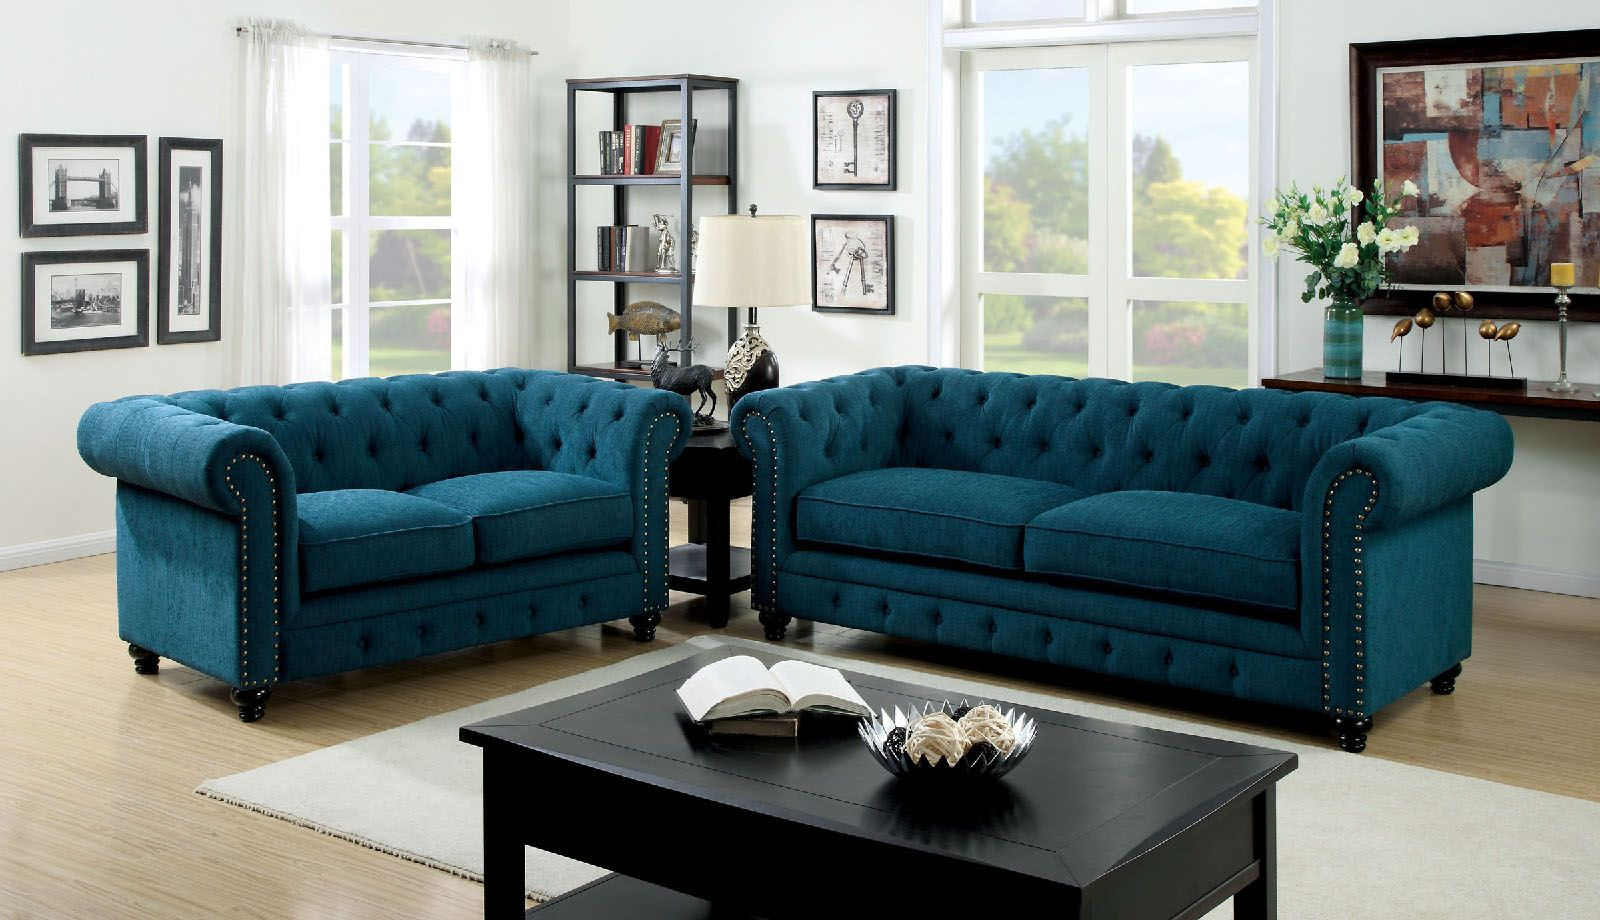 Best Blue Tufted Sofa 61 Sofas And Couches Set With Blue Tufted